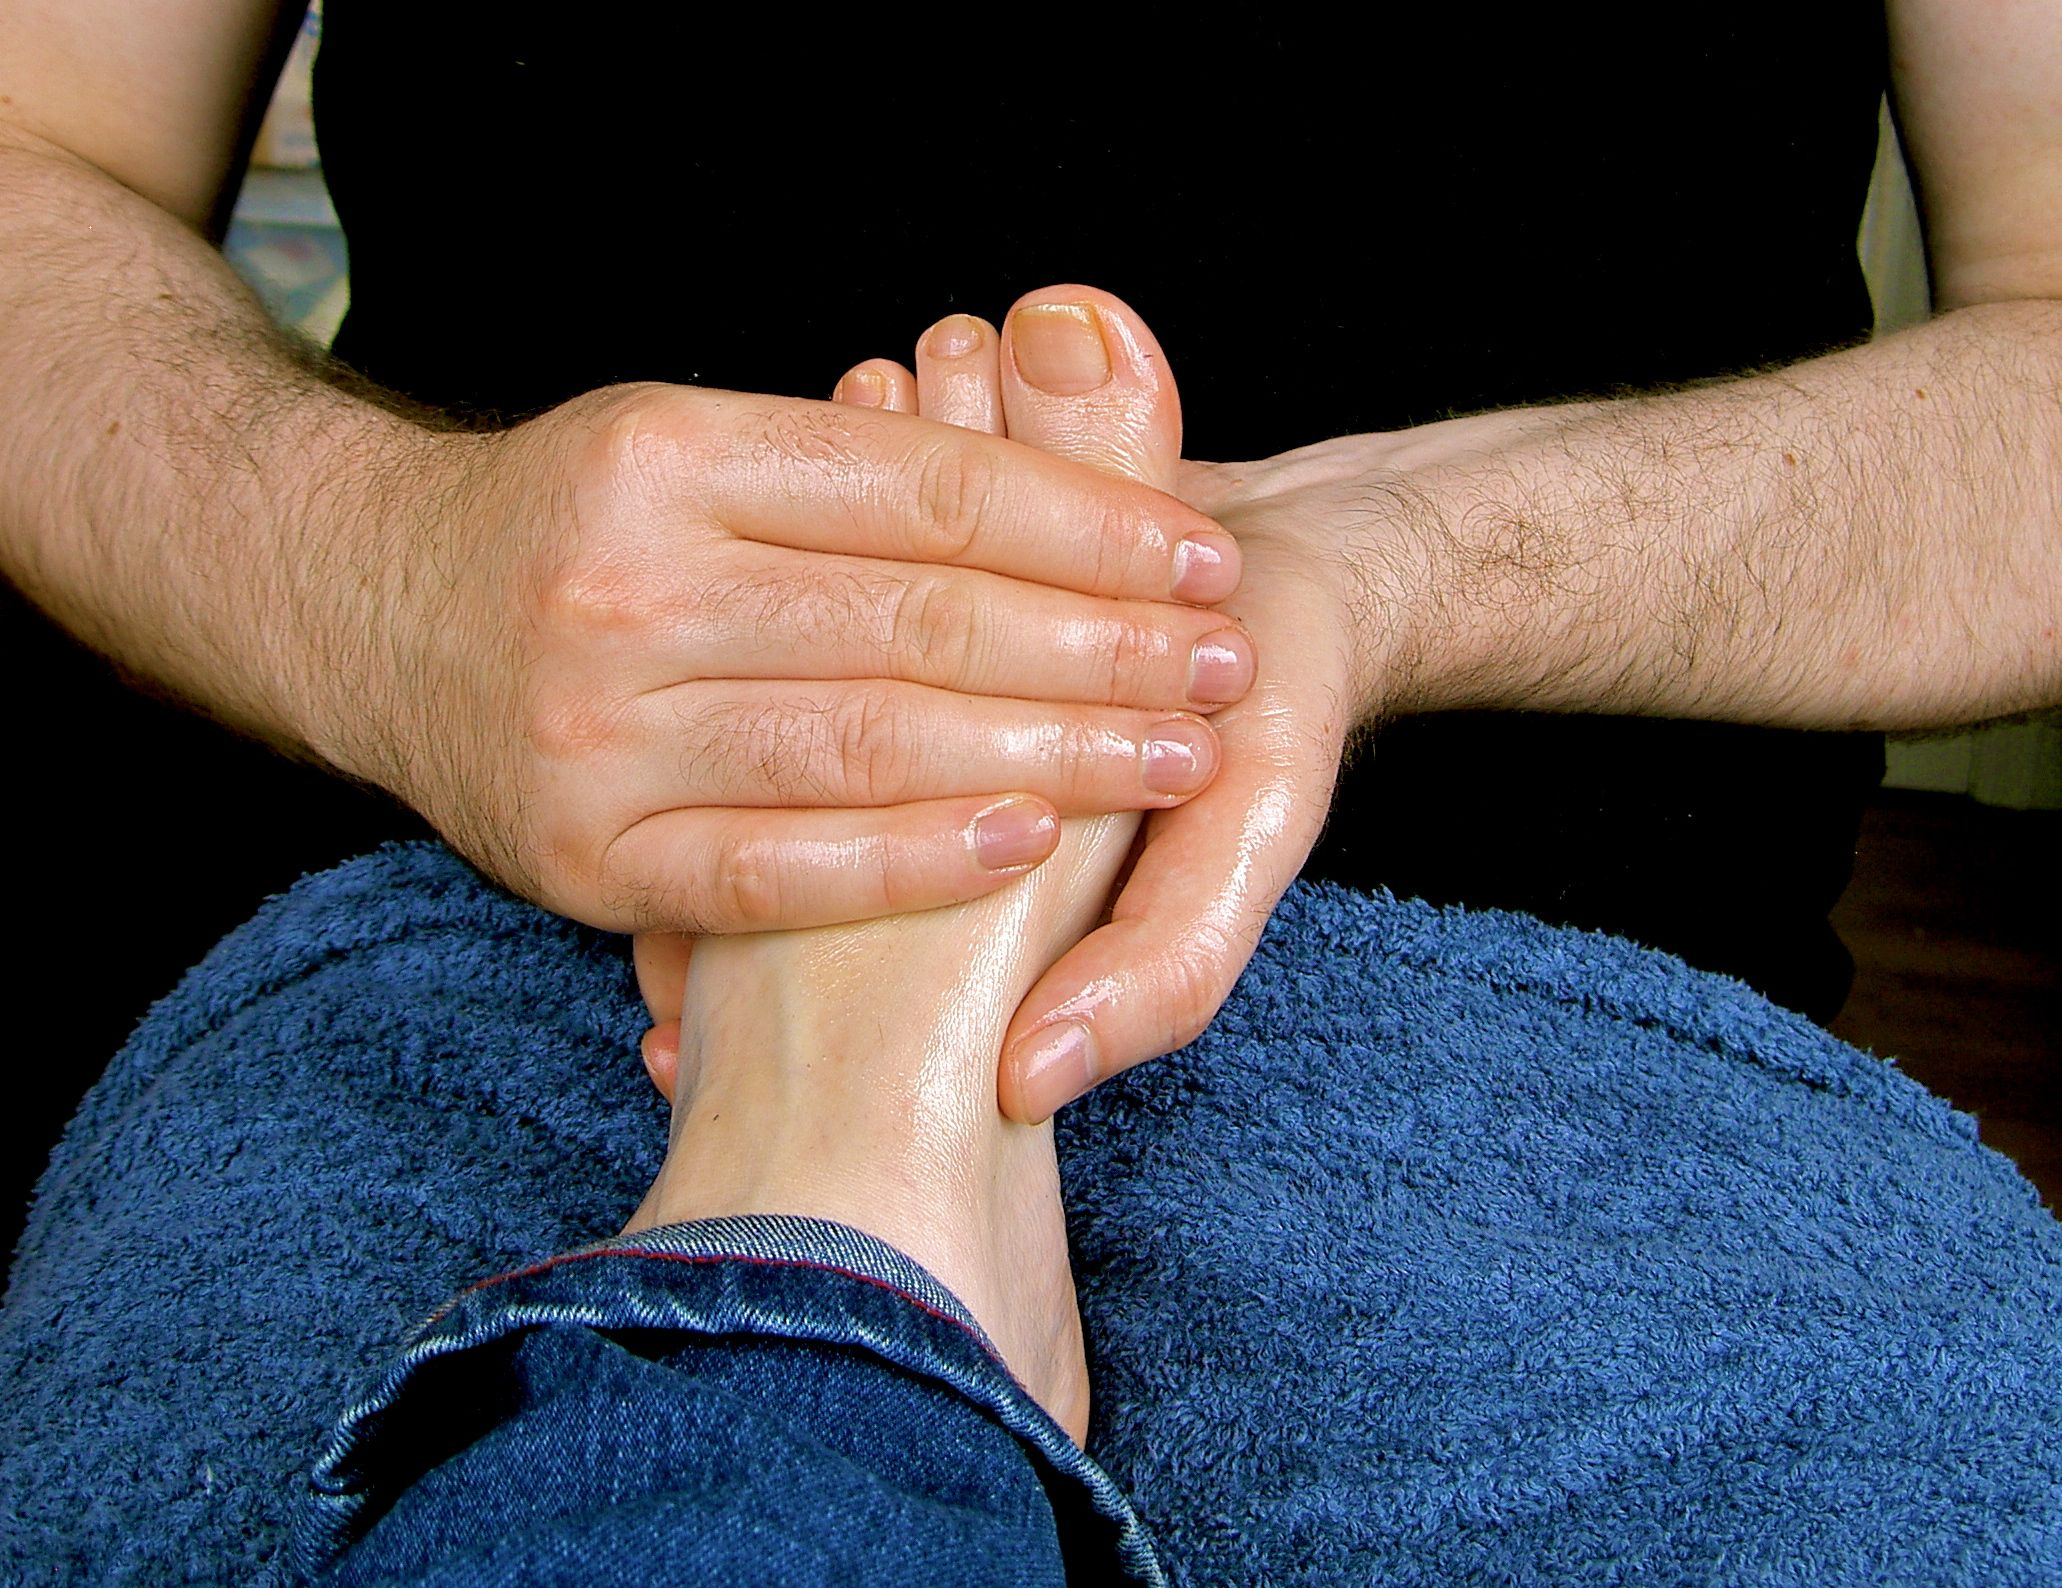 Chinese Massage Qigong Healing A Chinese Self Massage In The Morning